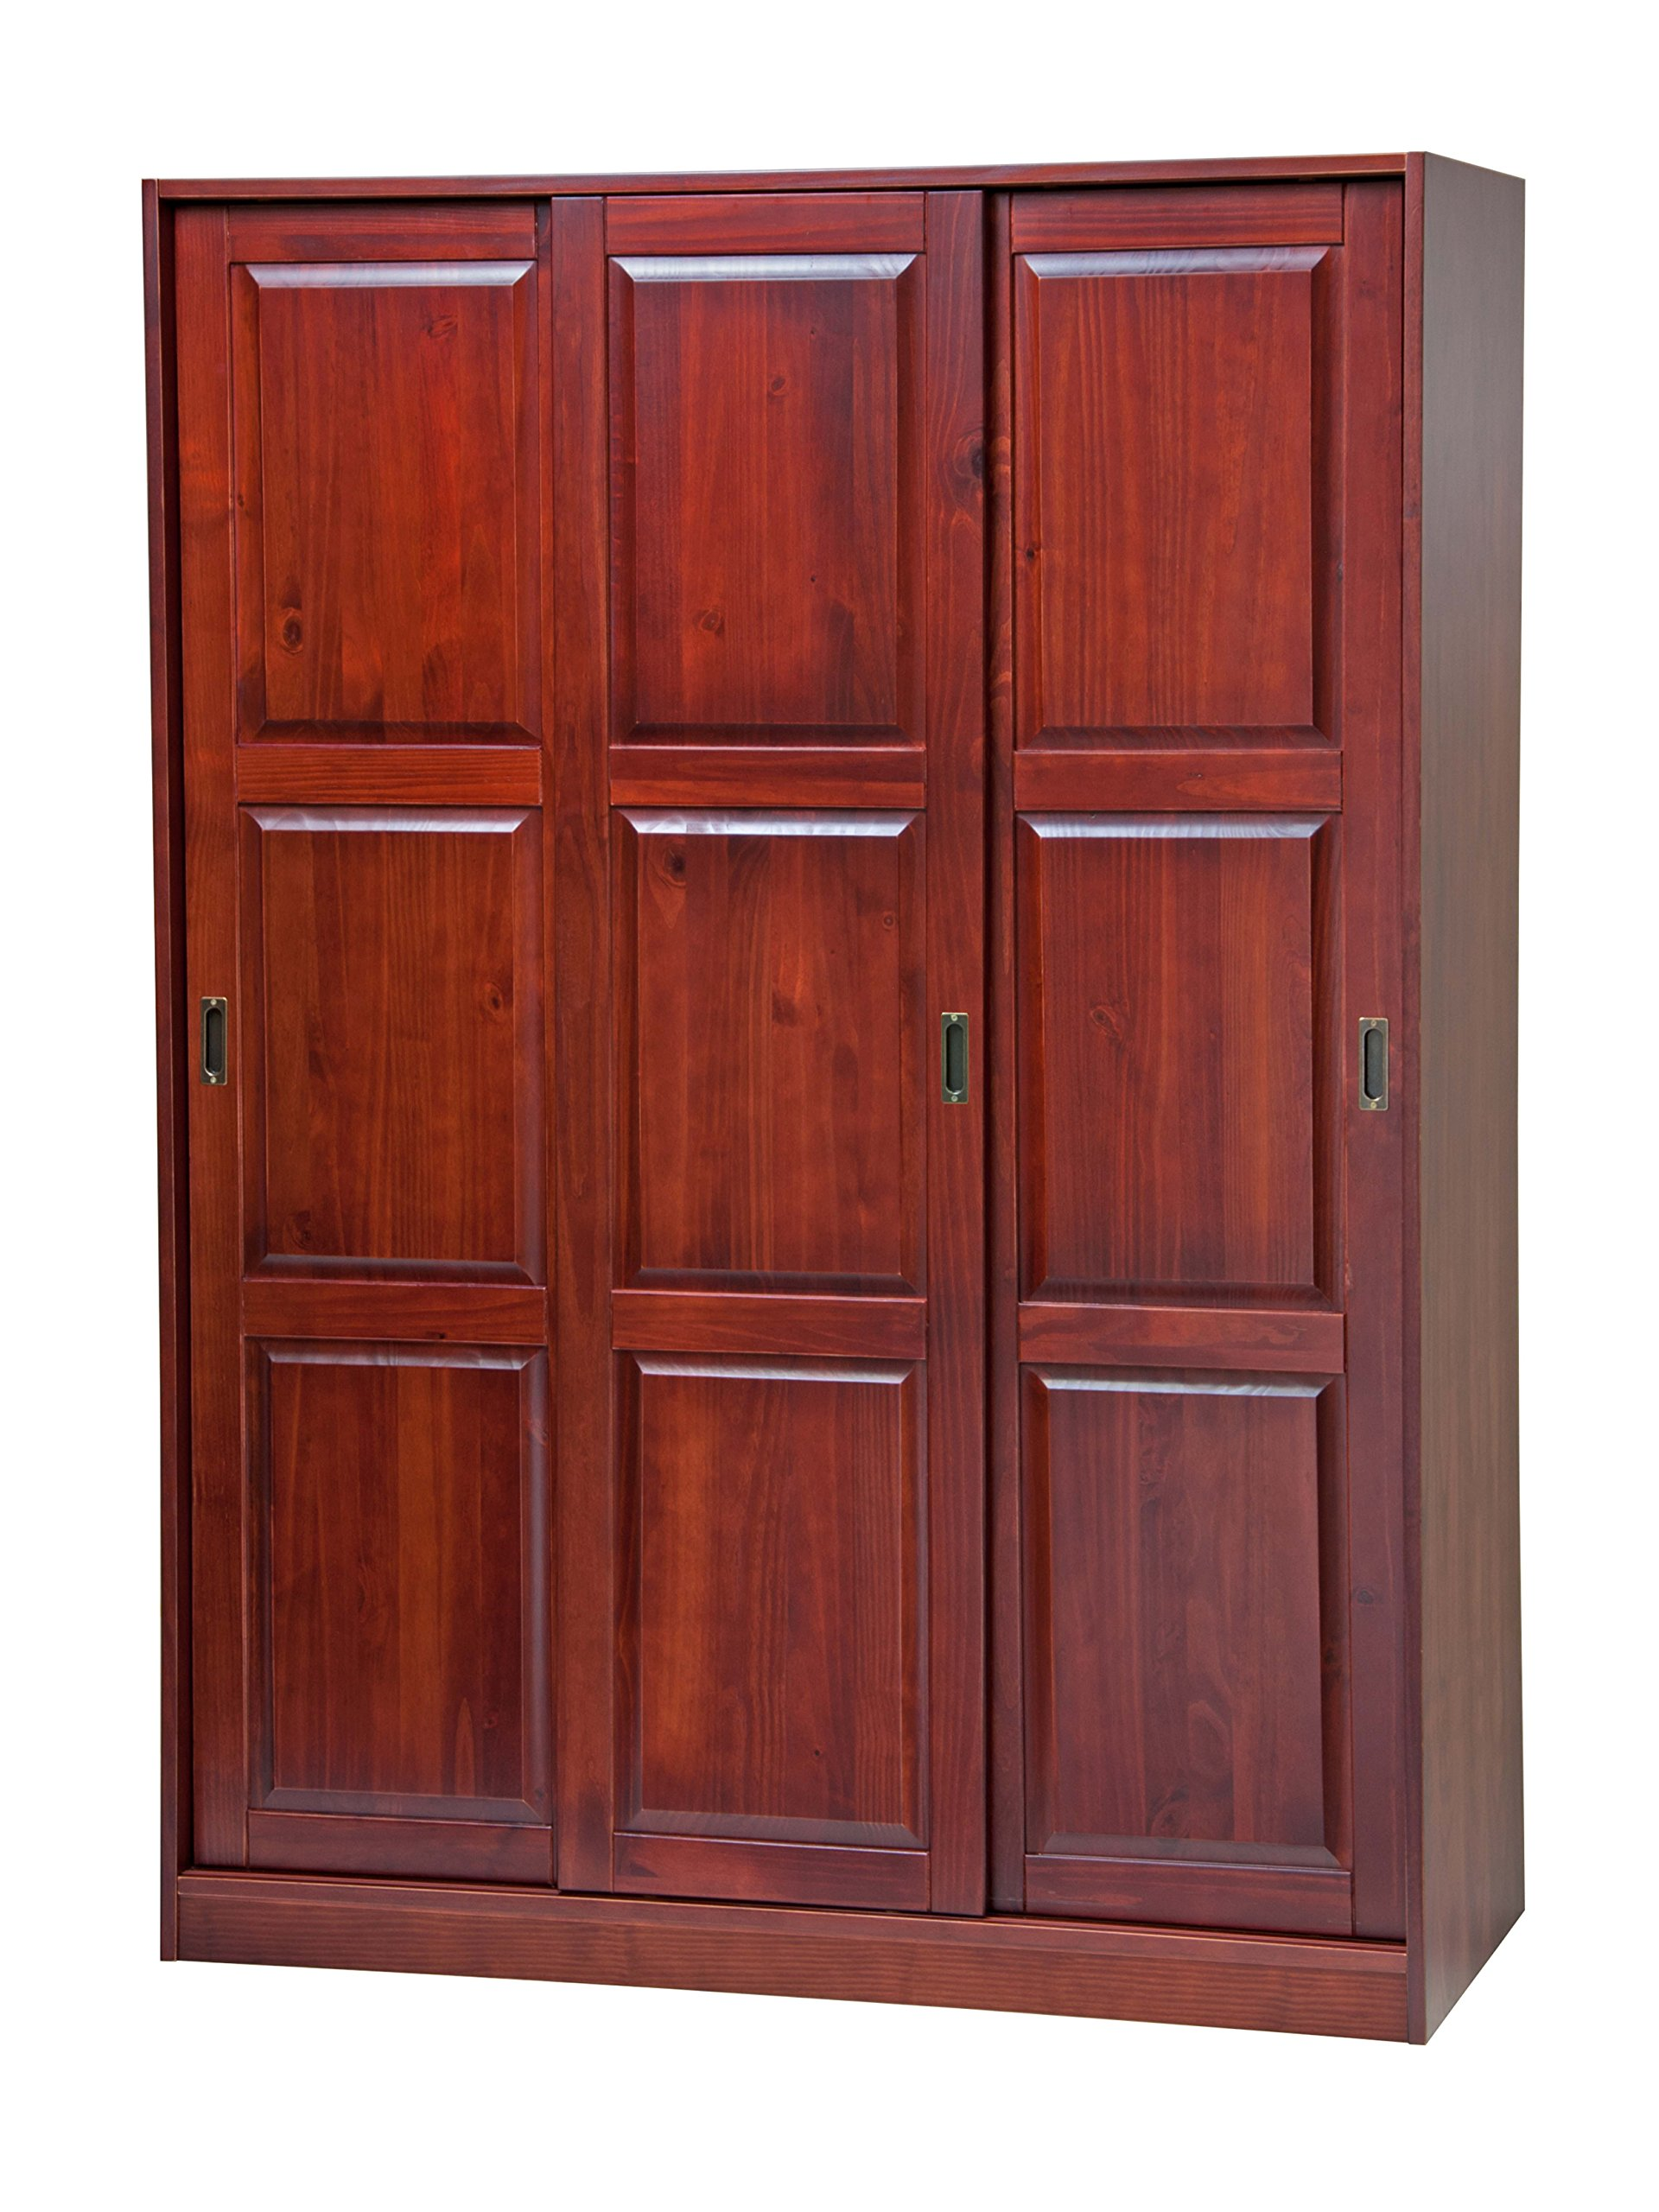 Palace Imports 5672 100% Solid Wood 3-Sliding Door Wardrobe/Armoire/Closet/Mudroom Storage, 52''w x 72''h x 22.5''d, Mahogany Color